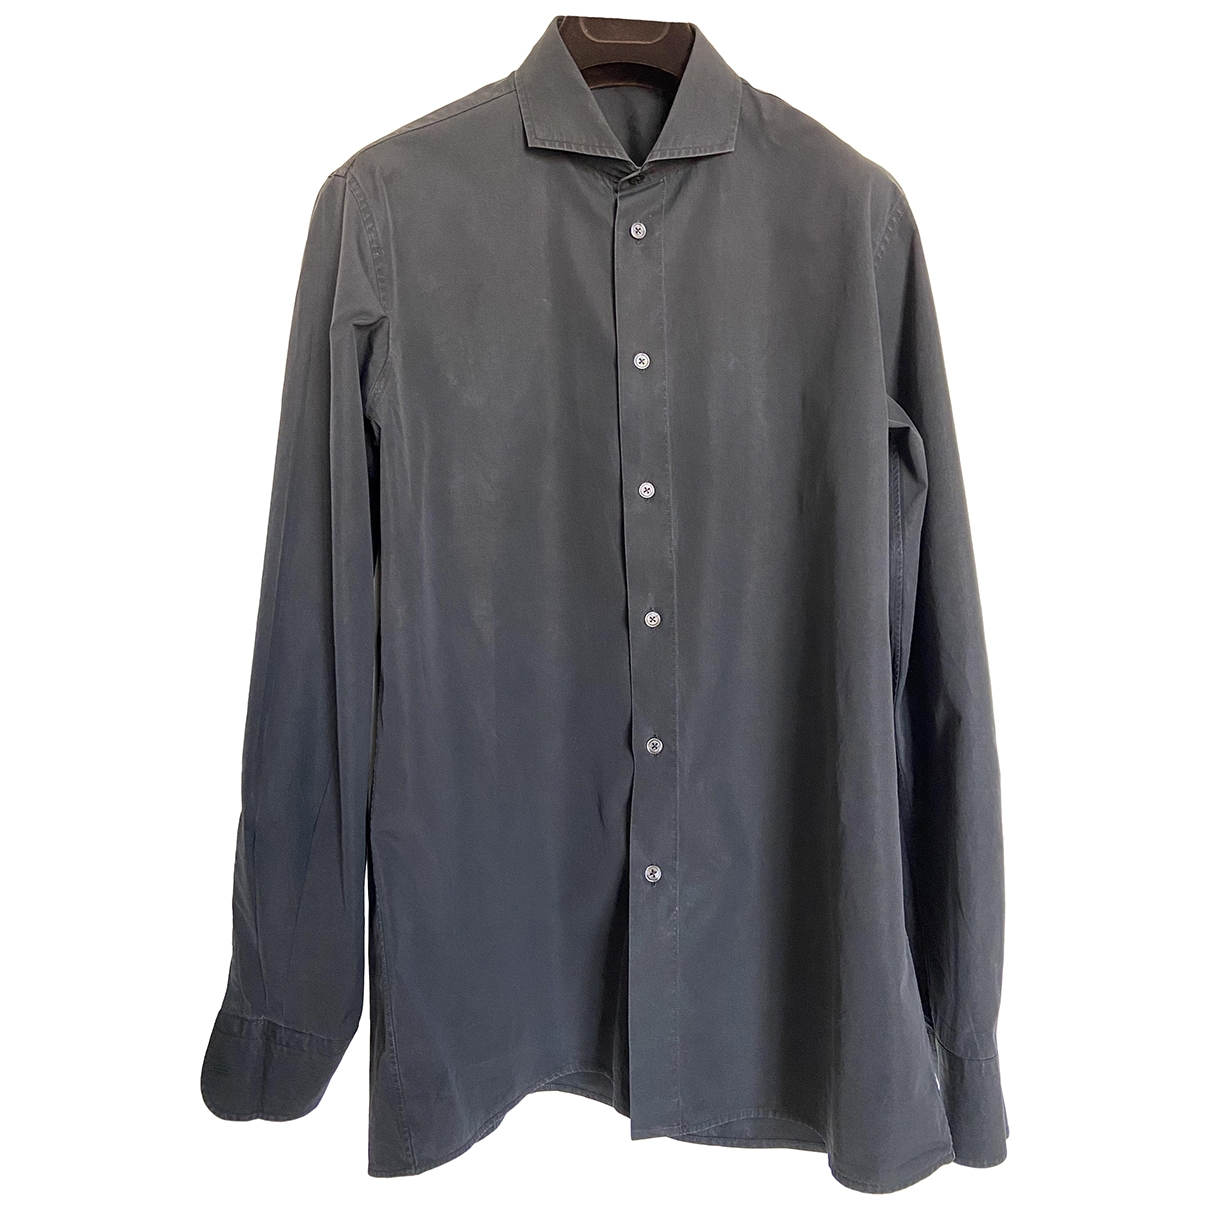 Bottega Veneta \N Black Cotton Shirts for Men 41 EU (tour de cou / collar)